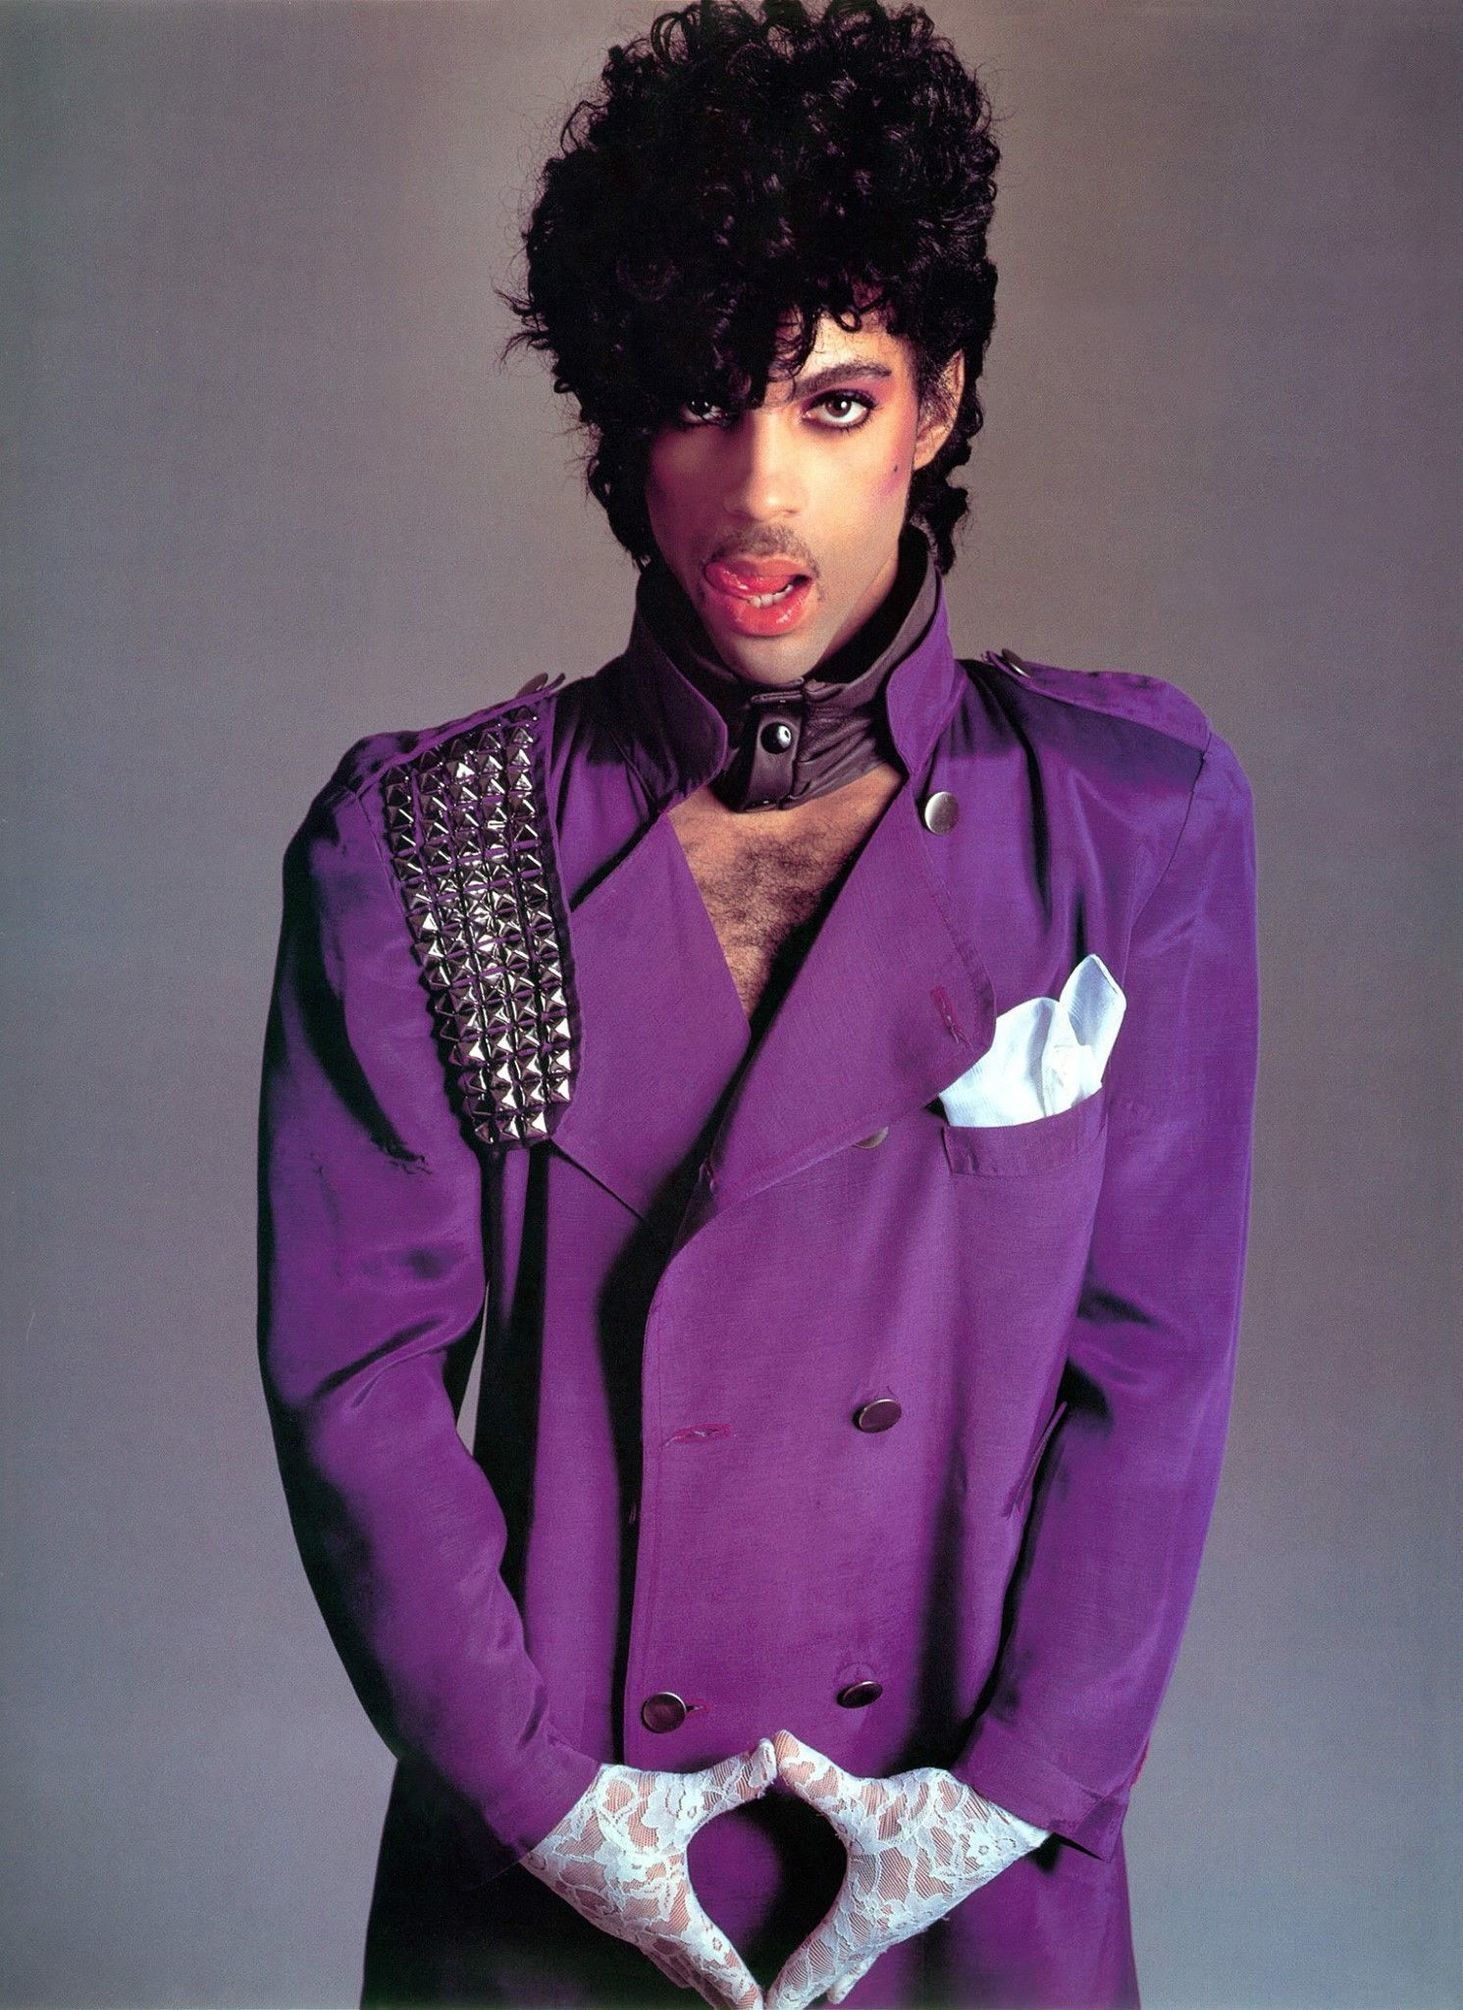 Prince 1980s look